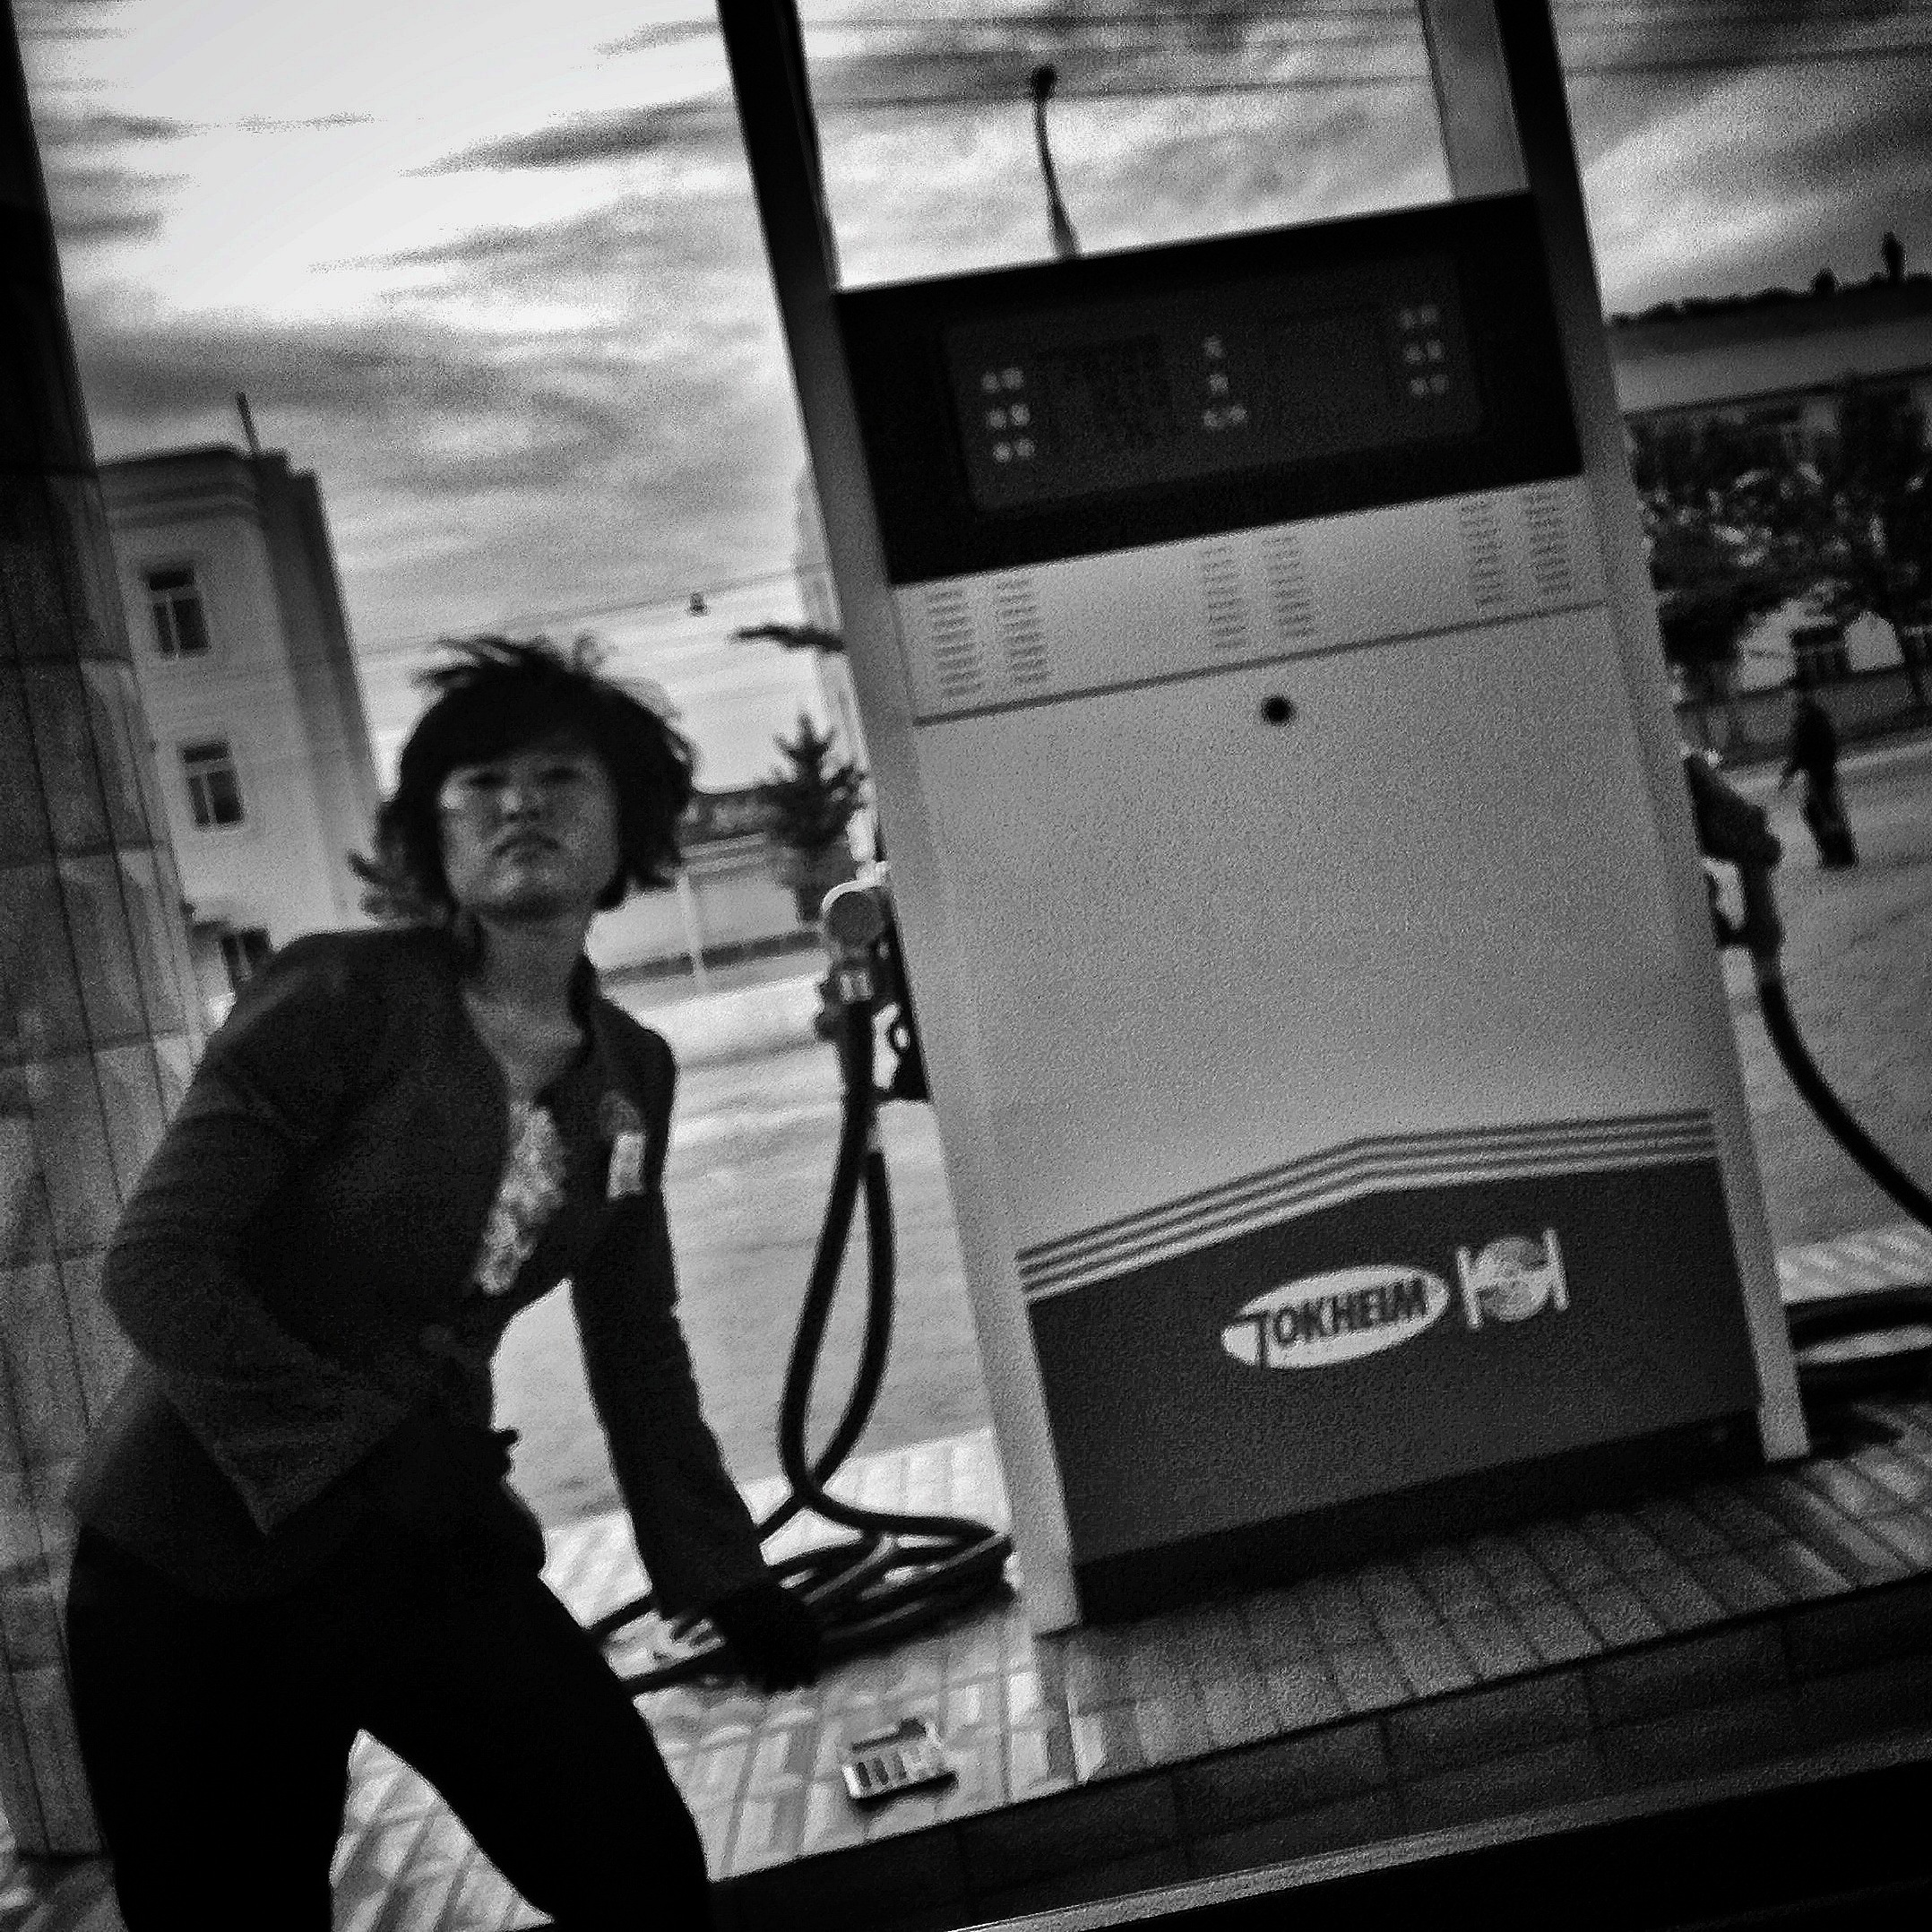 A North Korean gas station attendant works at a gas pump in the town of Hamhung.